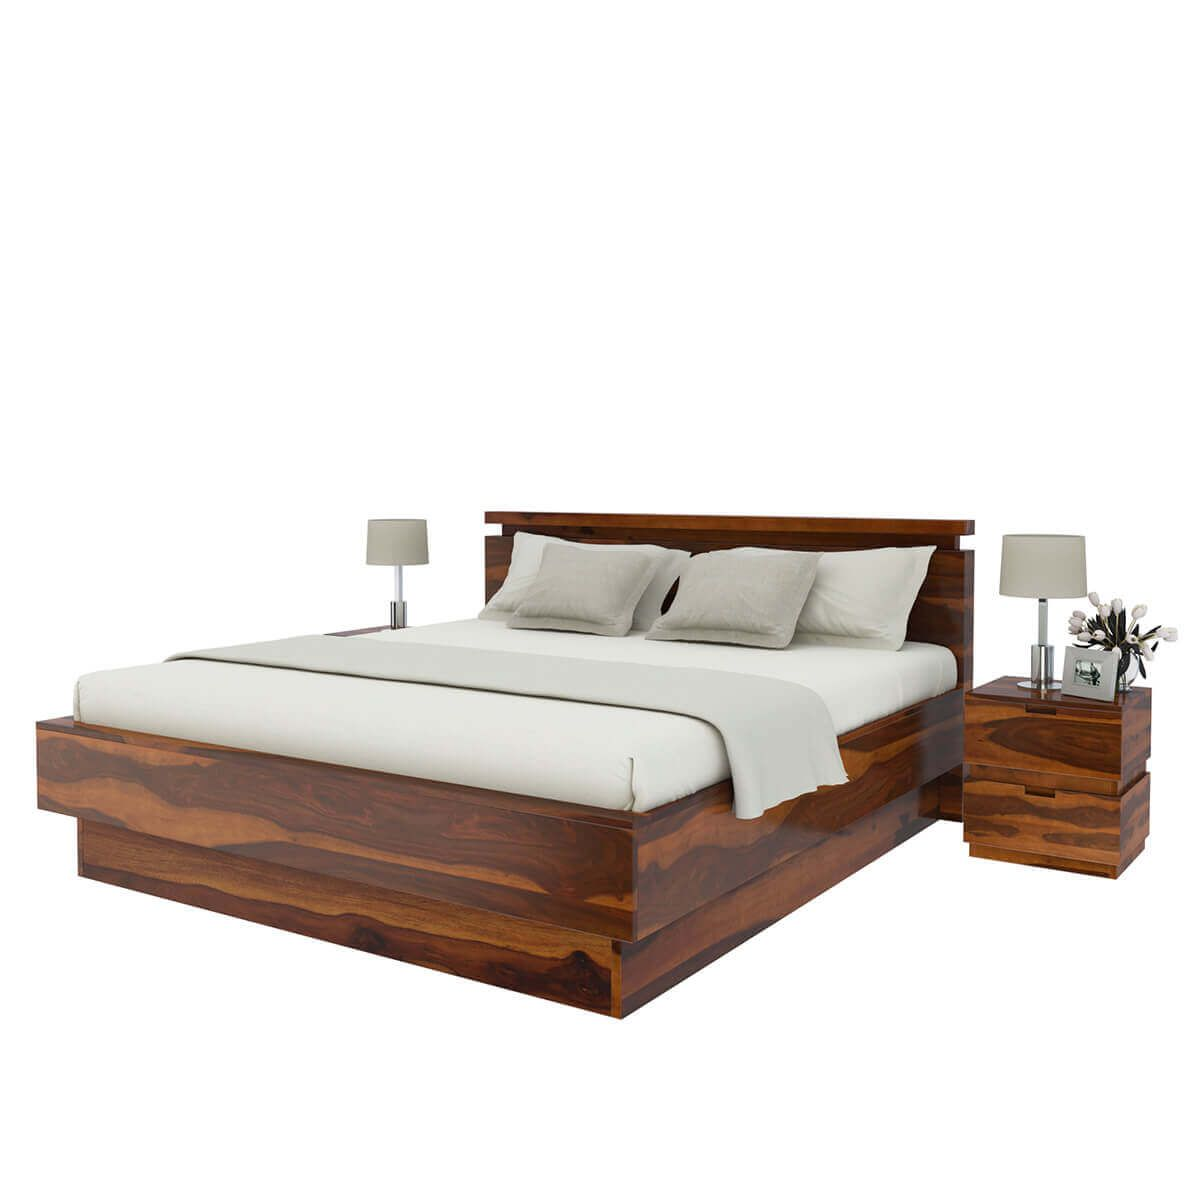 Modern Simplicity 4 Piece Bedroom Set Wood Platform Bed Solid